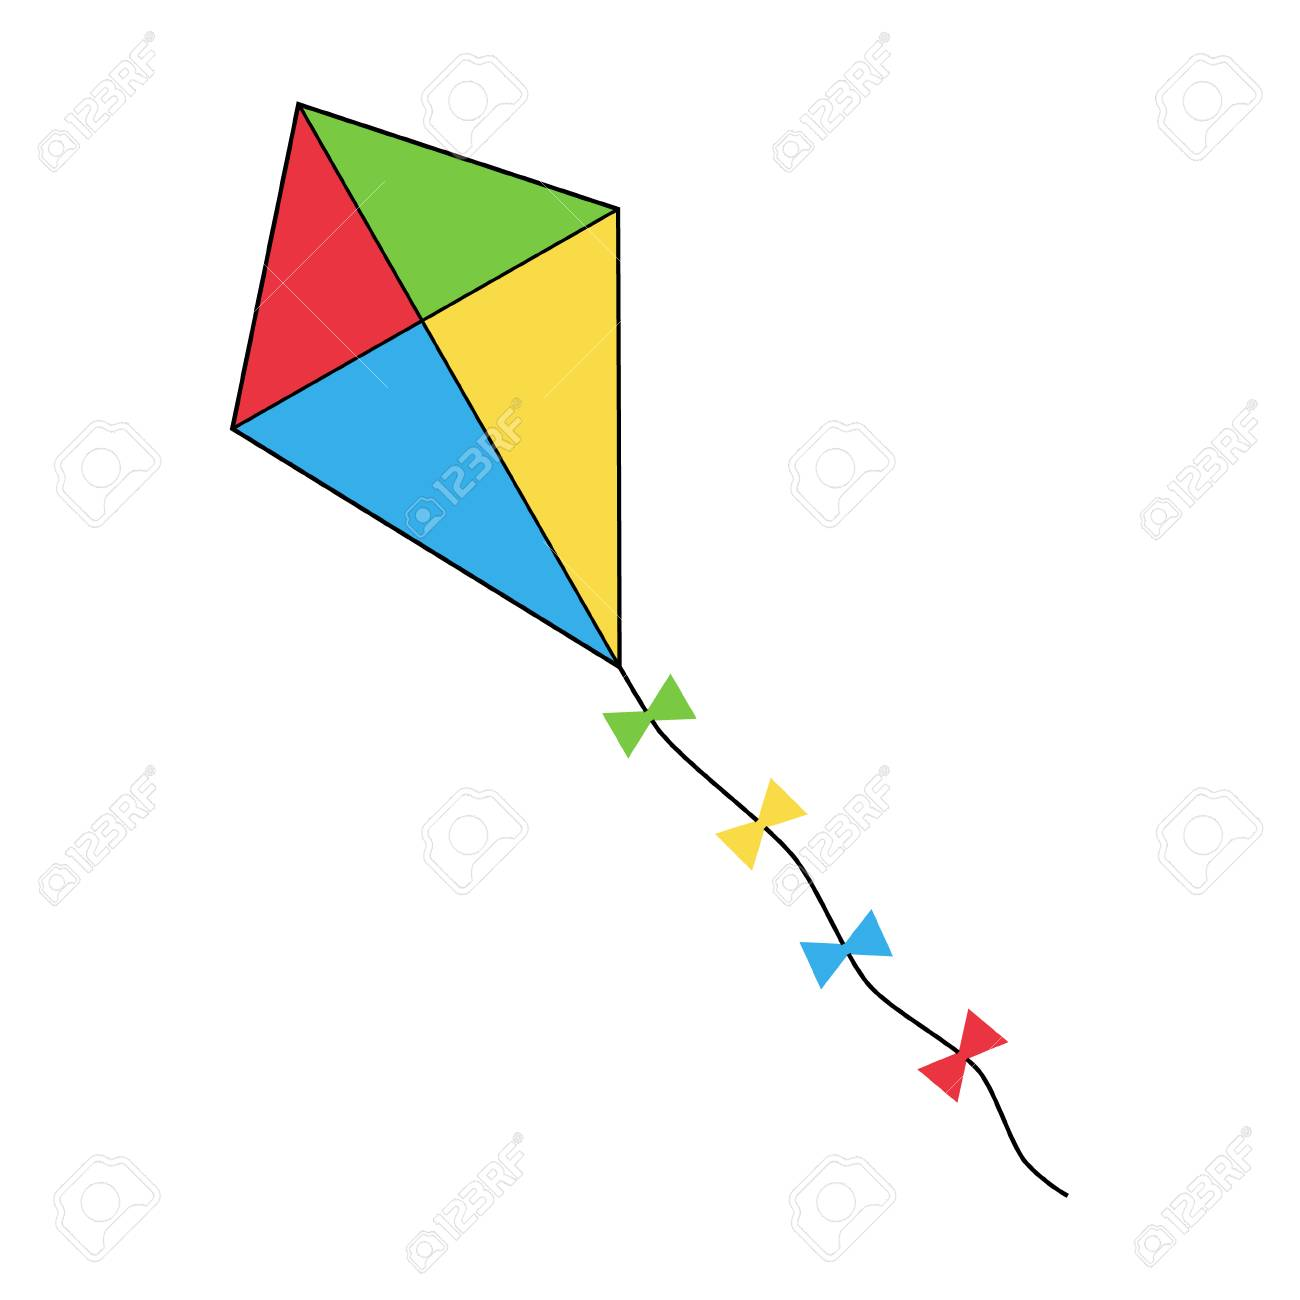 Colorful flying kite icon, vector illustration drawing. - 125897674